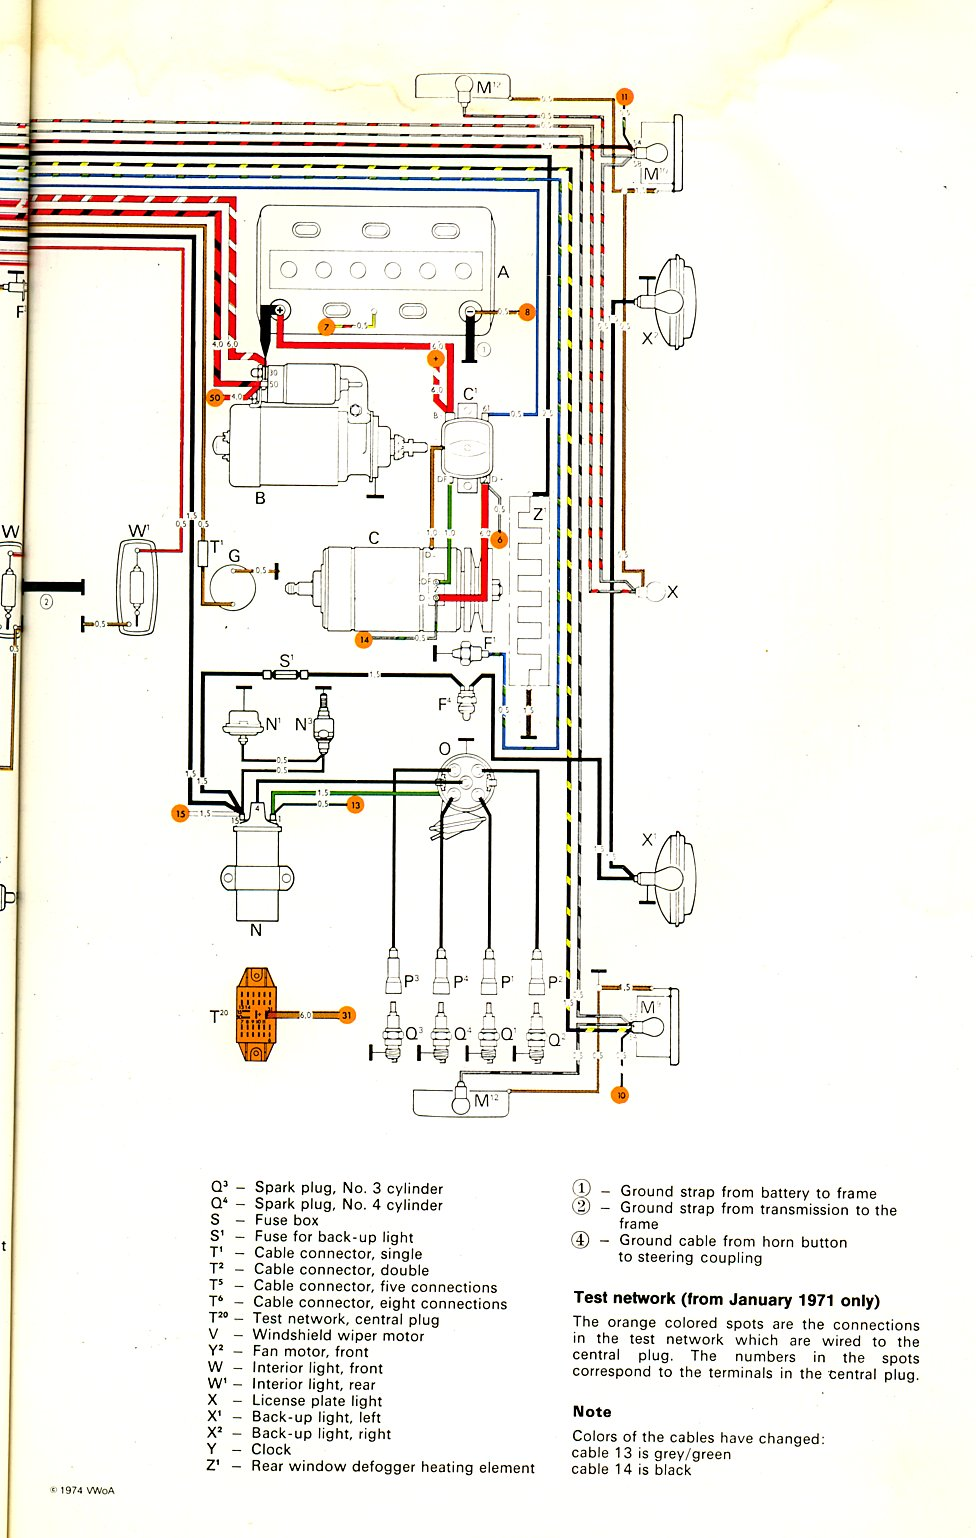 baybus_71b thesamba com type 2 wiring diagrams ford transit interior lights wiring diagram at gsmx.co